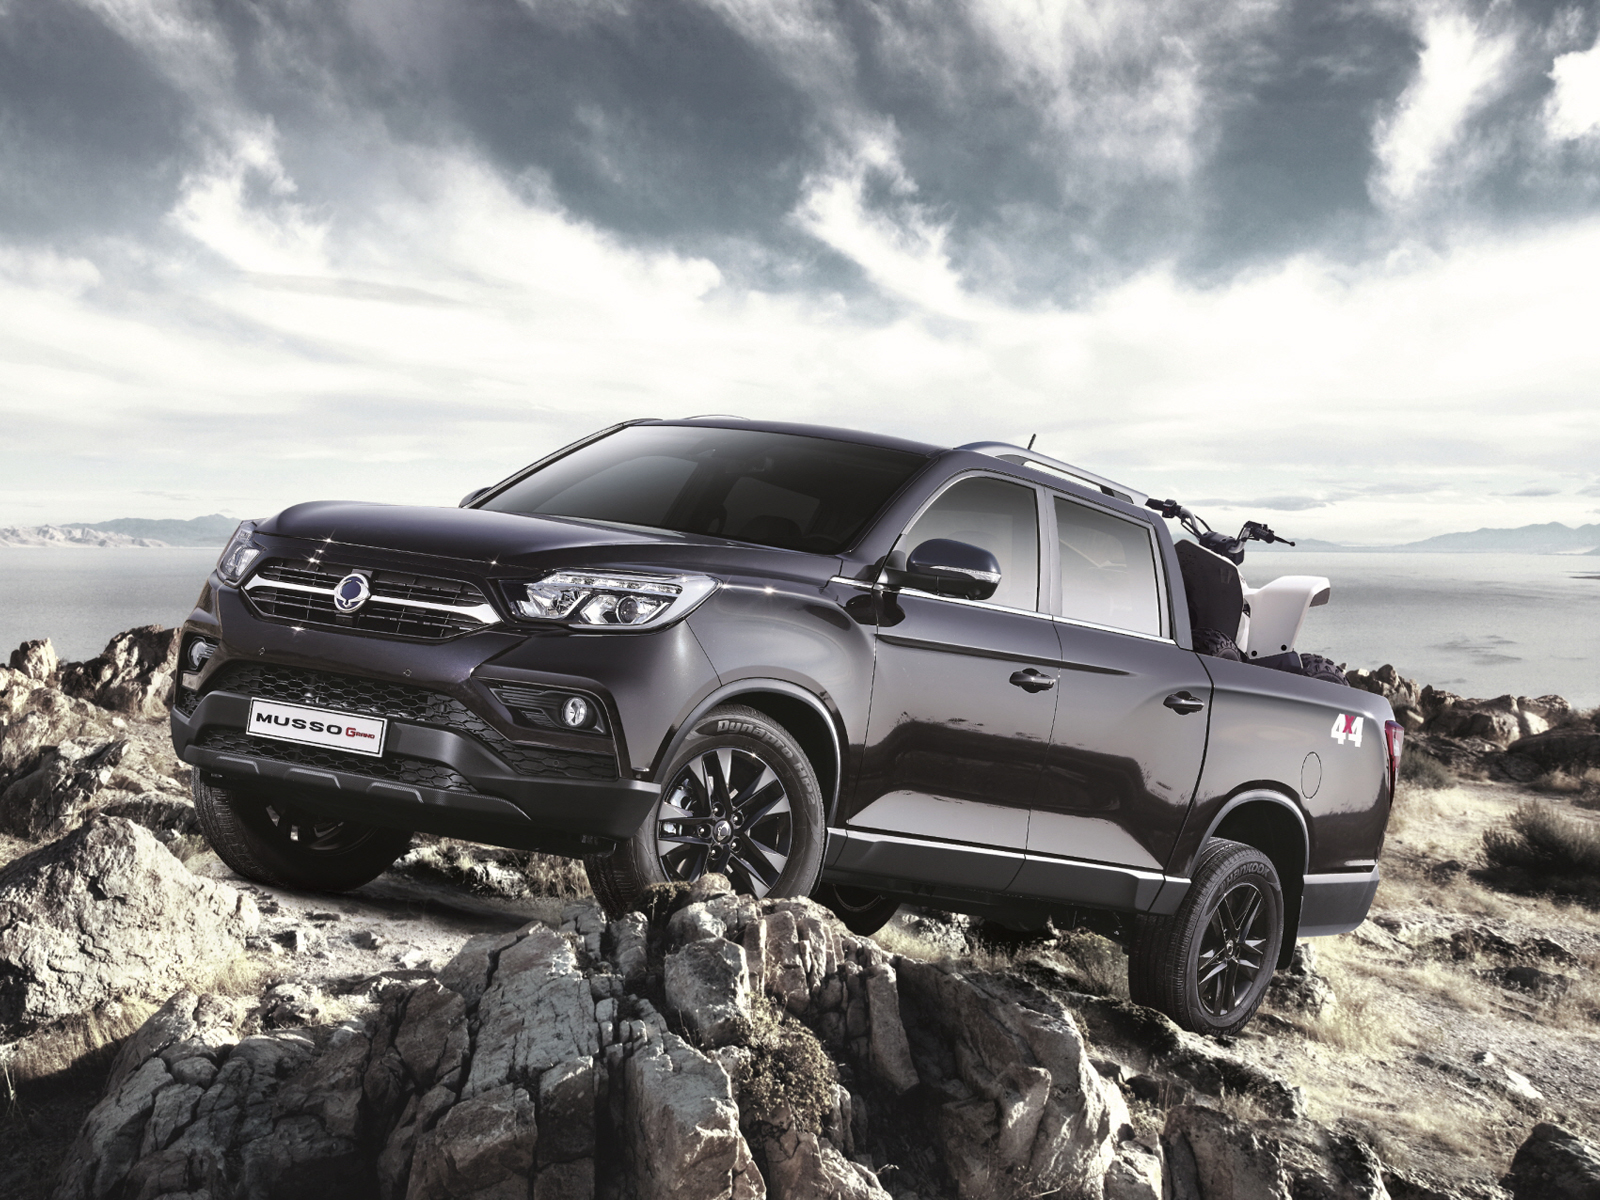 ssangyong_musso_grand_6